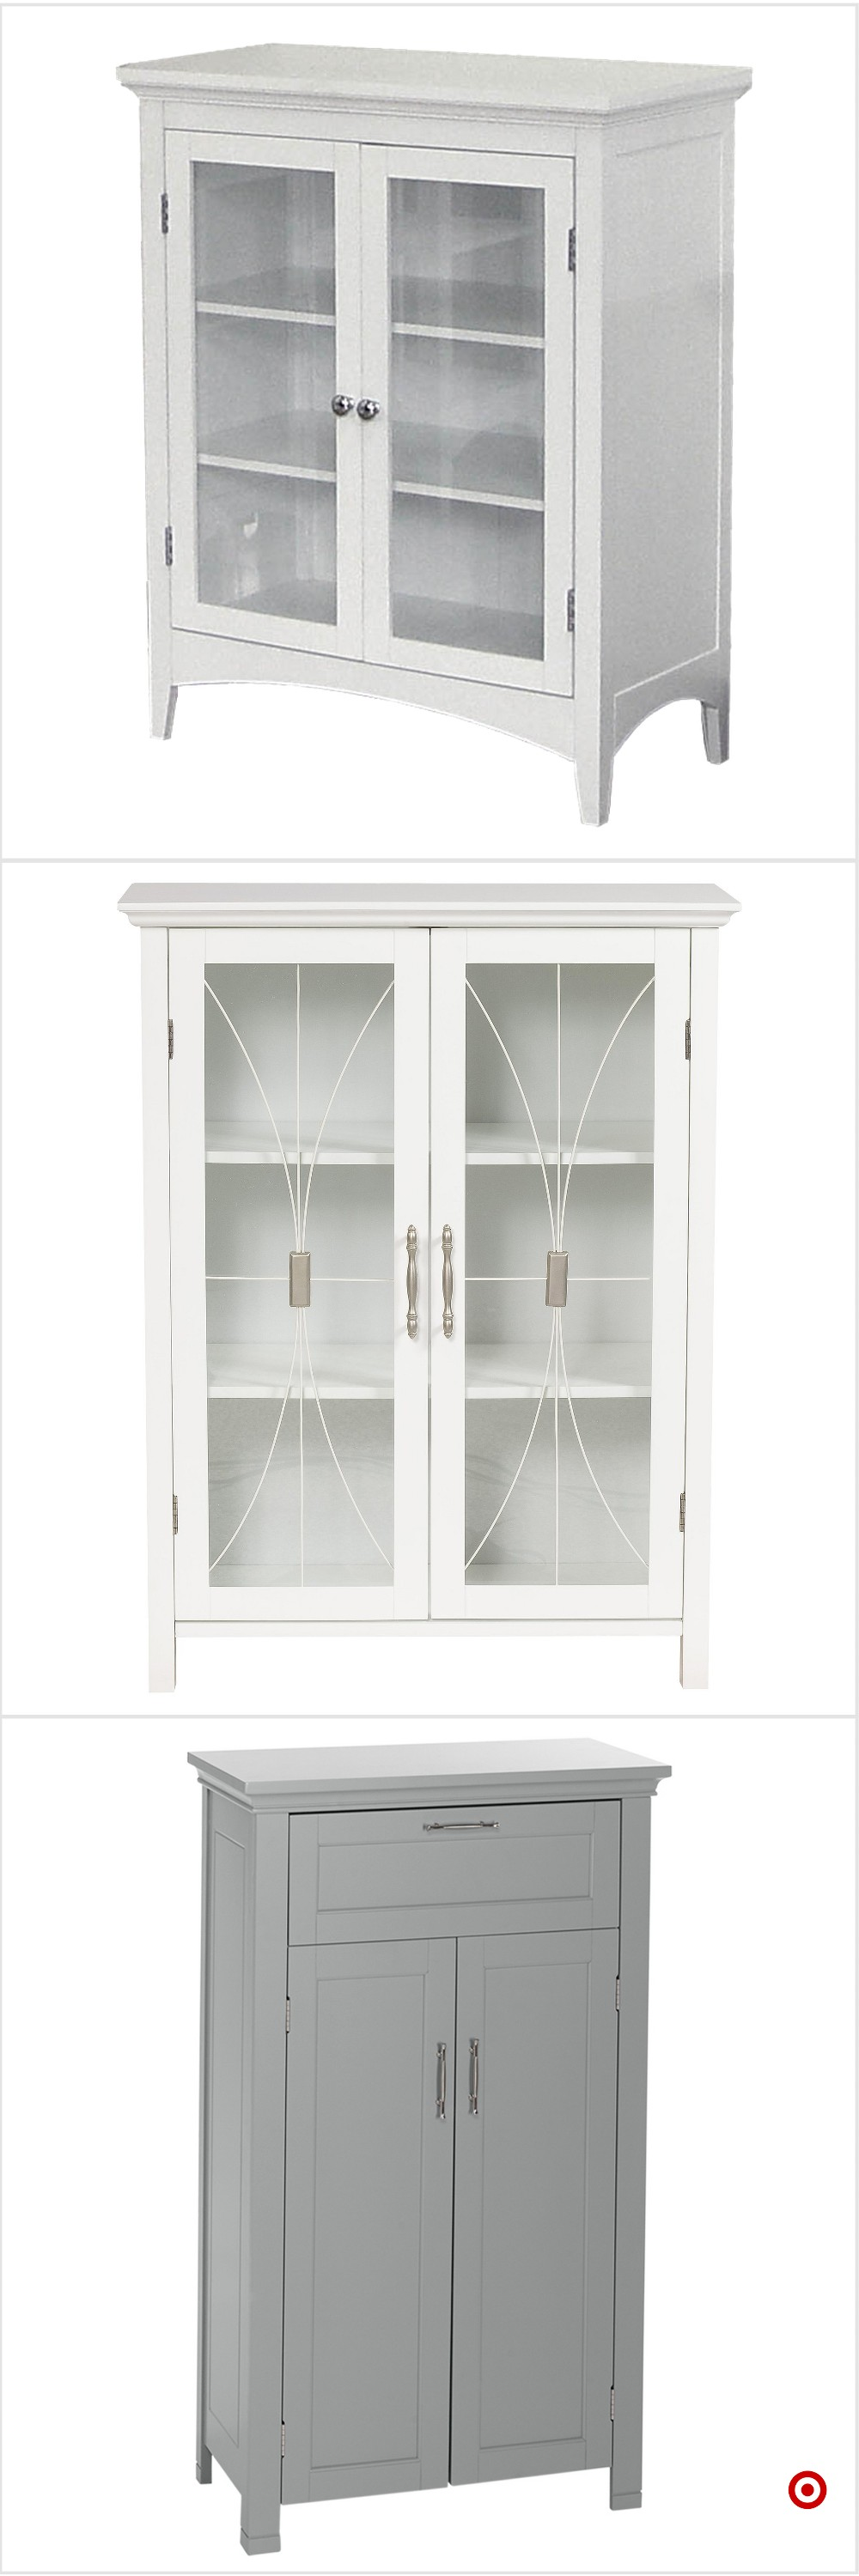 Superbe Shop Target For Floor Cabinet You Will Love At Great Low Prices. Free  Shipping On